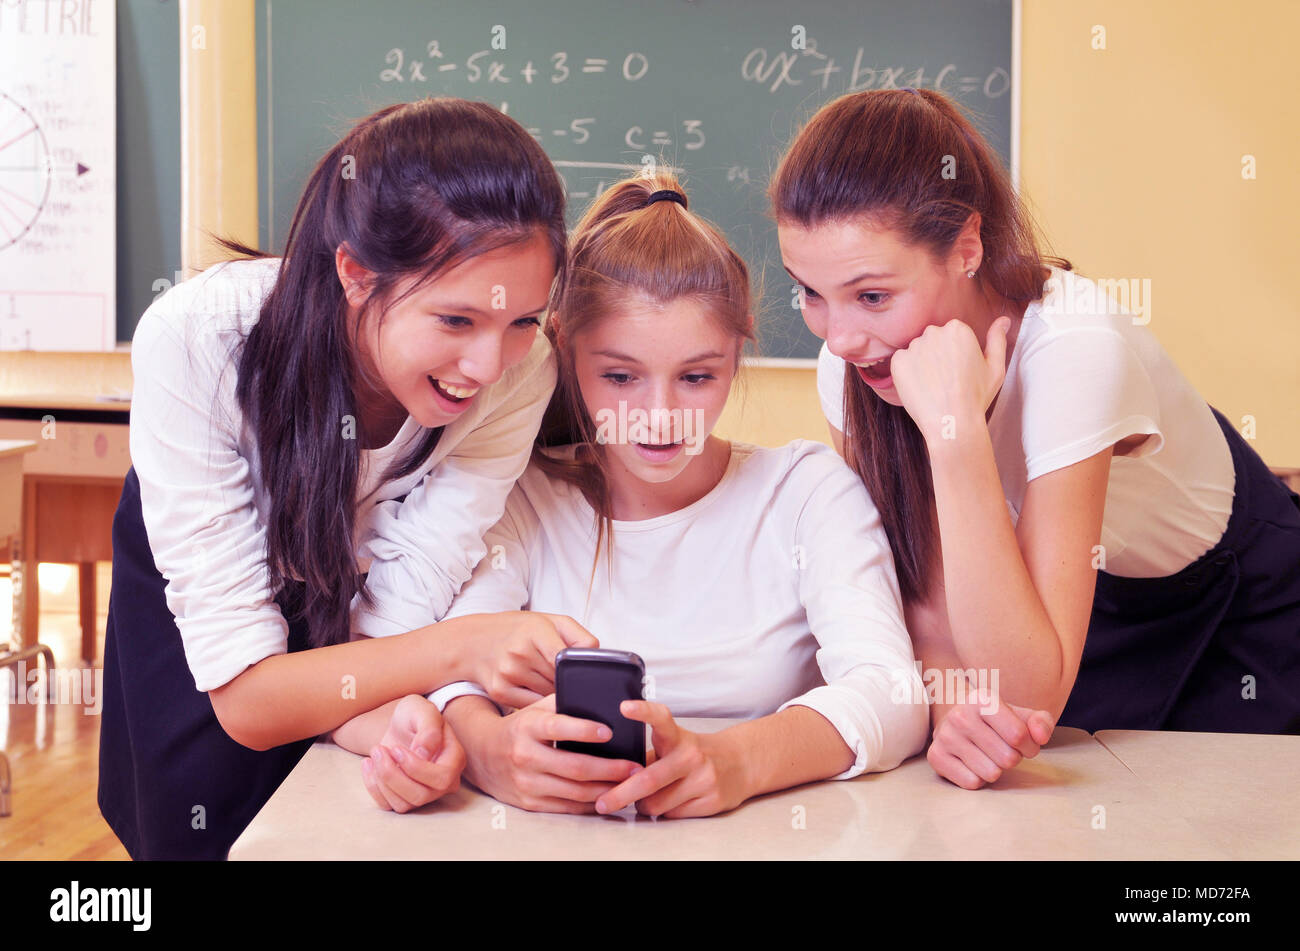 Three happy school girls in their math class - Stock Image